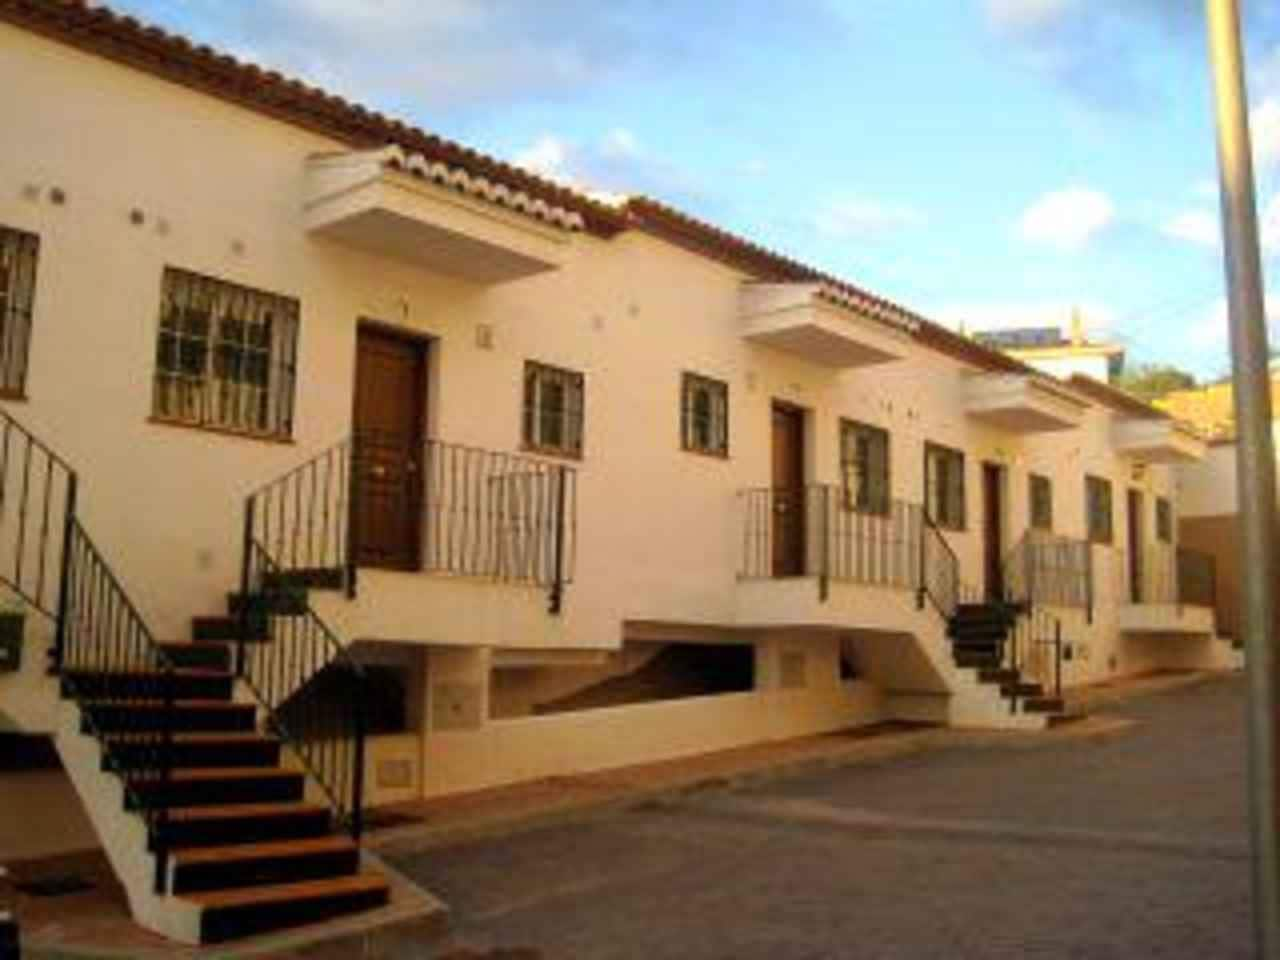 2 bedroom Townhouse for sale in Alcaucin with pool - € 162,000 (Ref: 3146310)